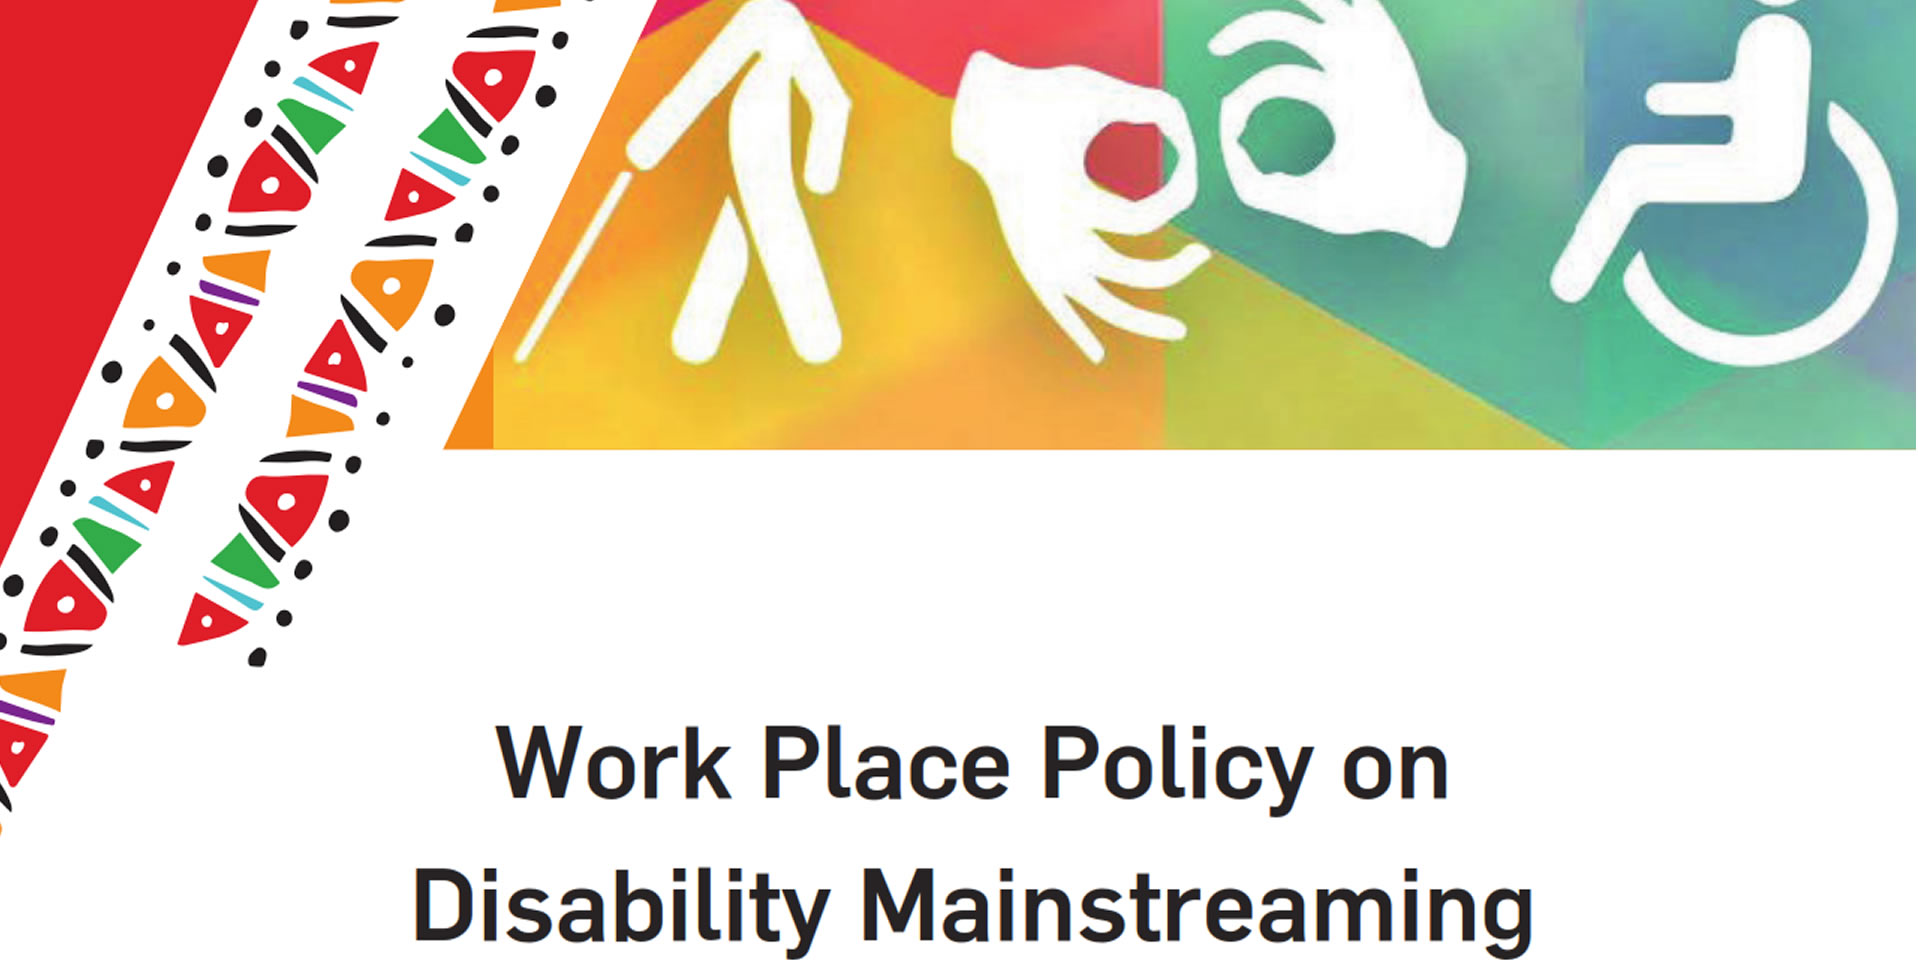 Work Place Policy on Disability Mainstreaming